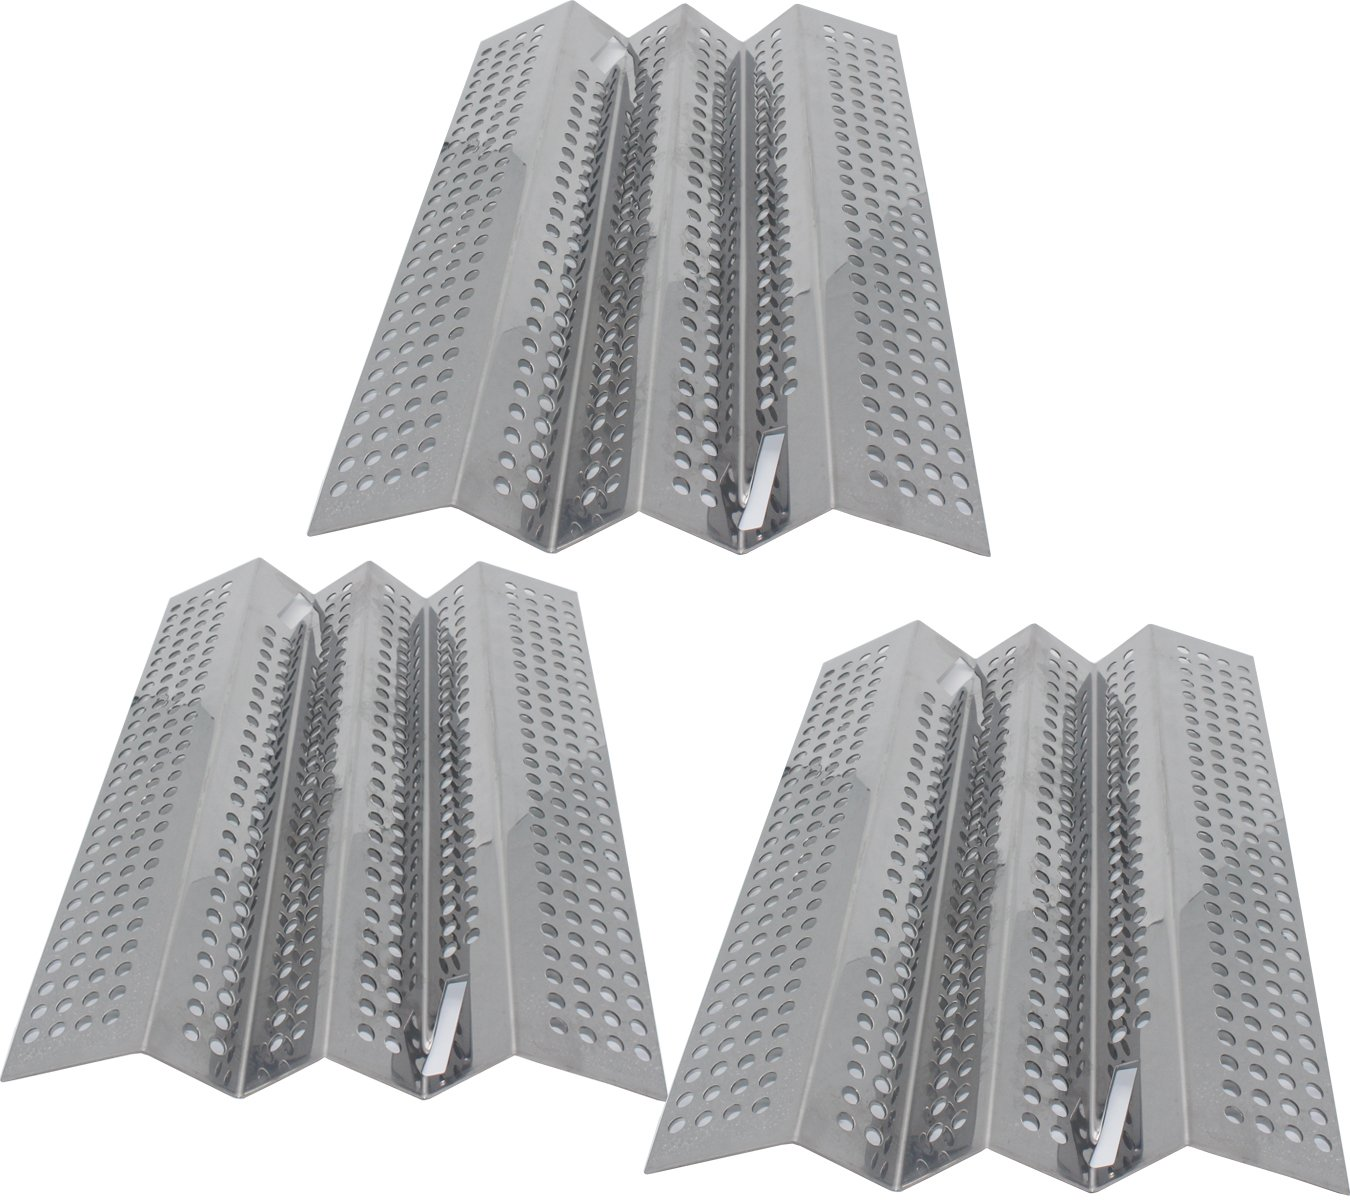 Grilling Corner 15 7/16 x 10 5/8'' Stainless Vaporizing Panels (3-Pack) for American Outdoor Grill 24NB, 24NG, 24NP, 24PC, 36NB, 36PC